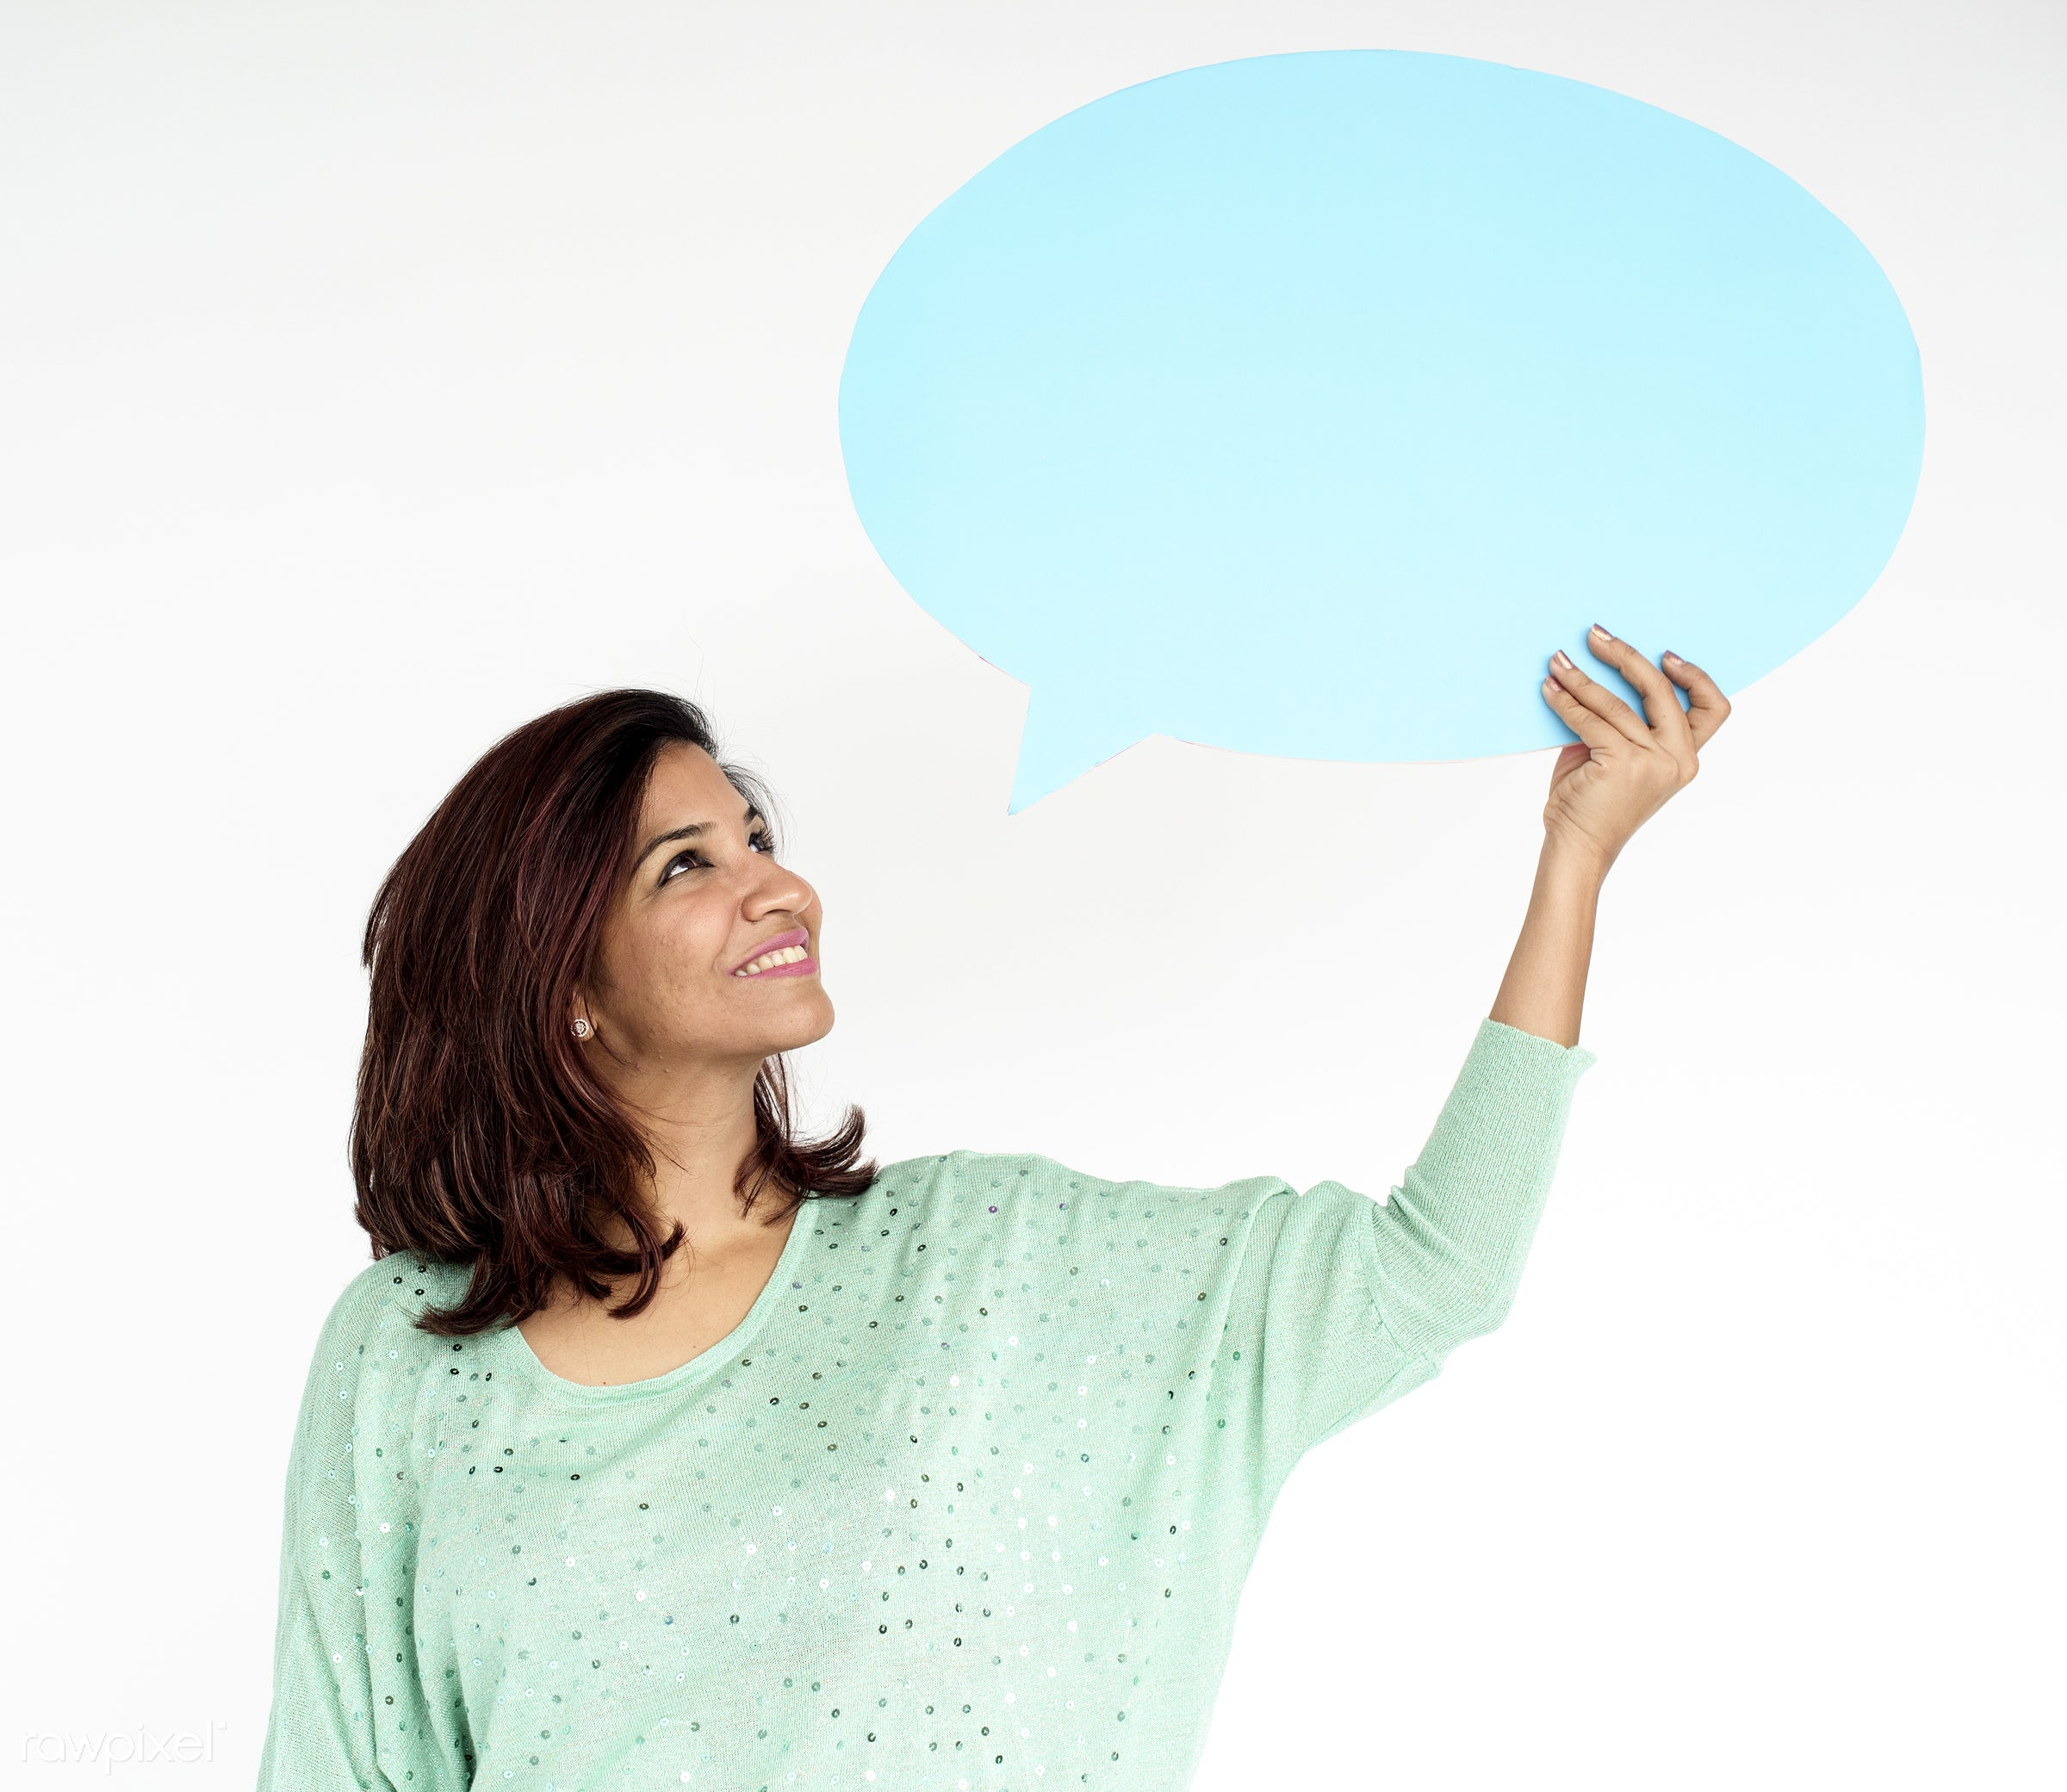 studio, expression, person, holding, isolated on white, indian ethnicity, people, woman, speech bubble, casual, smiling,...